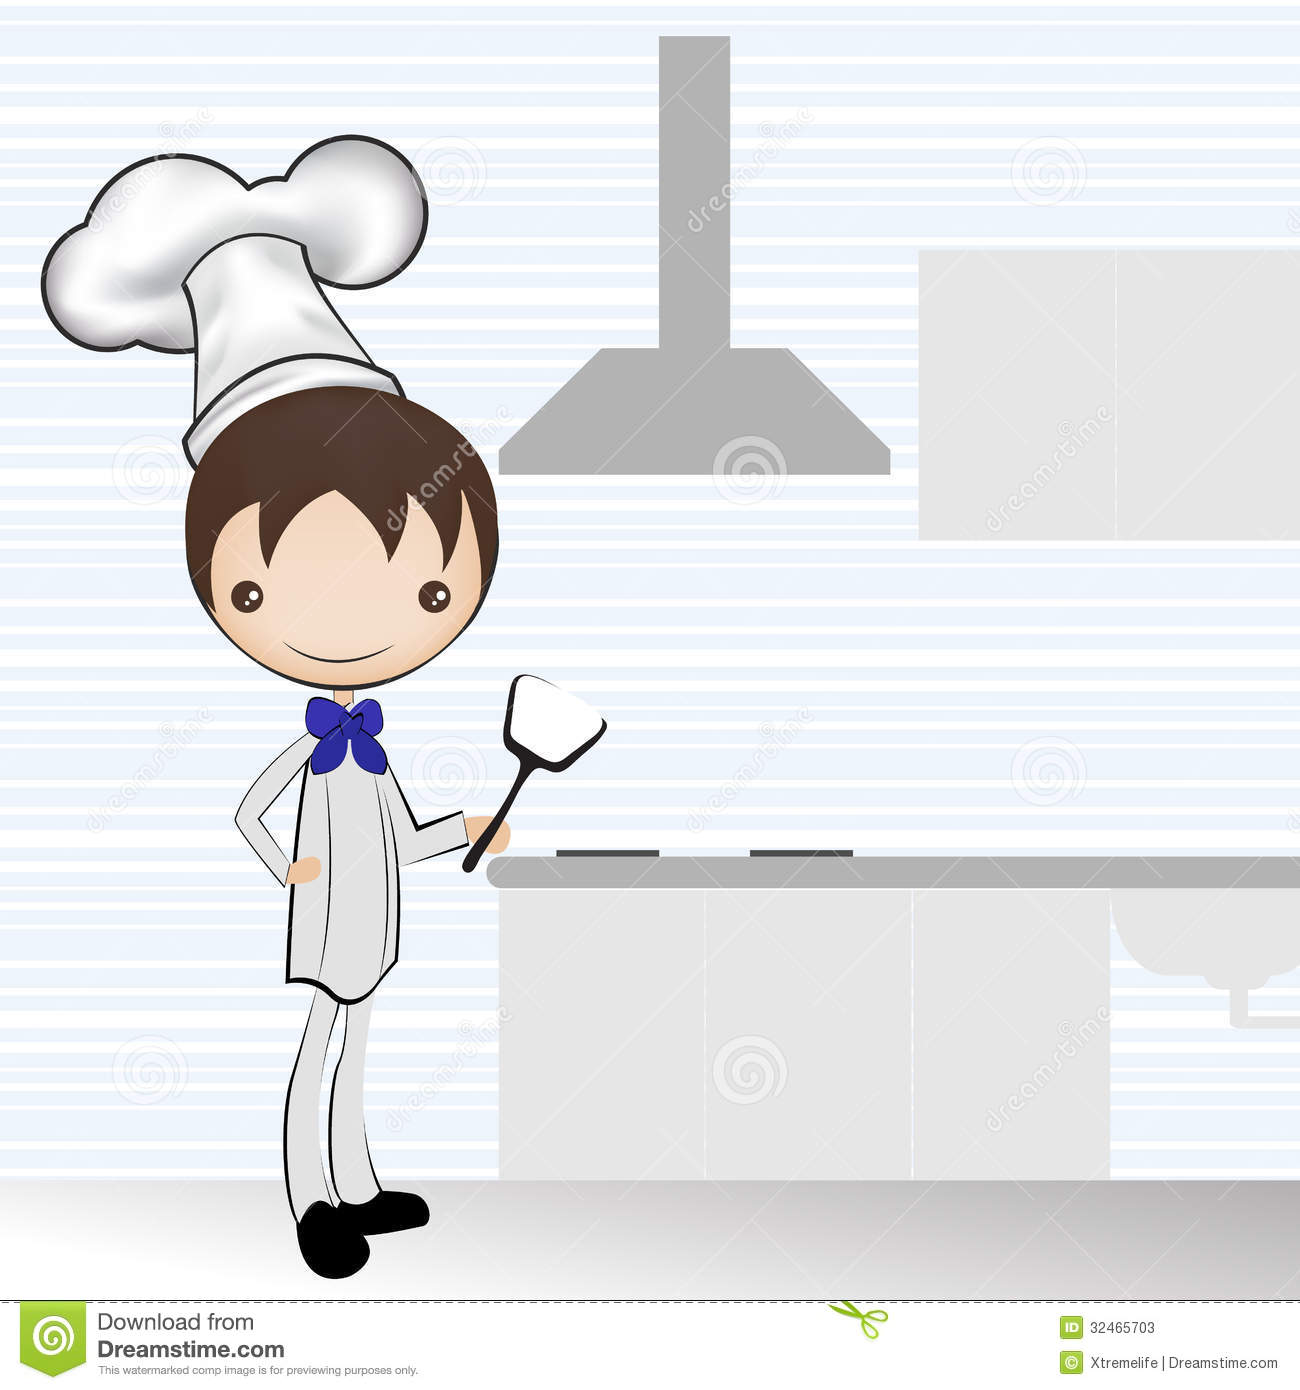 Restaurant Kitchen Illustration chef and the kitchen / illustration stock photos - image: 32465703